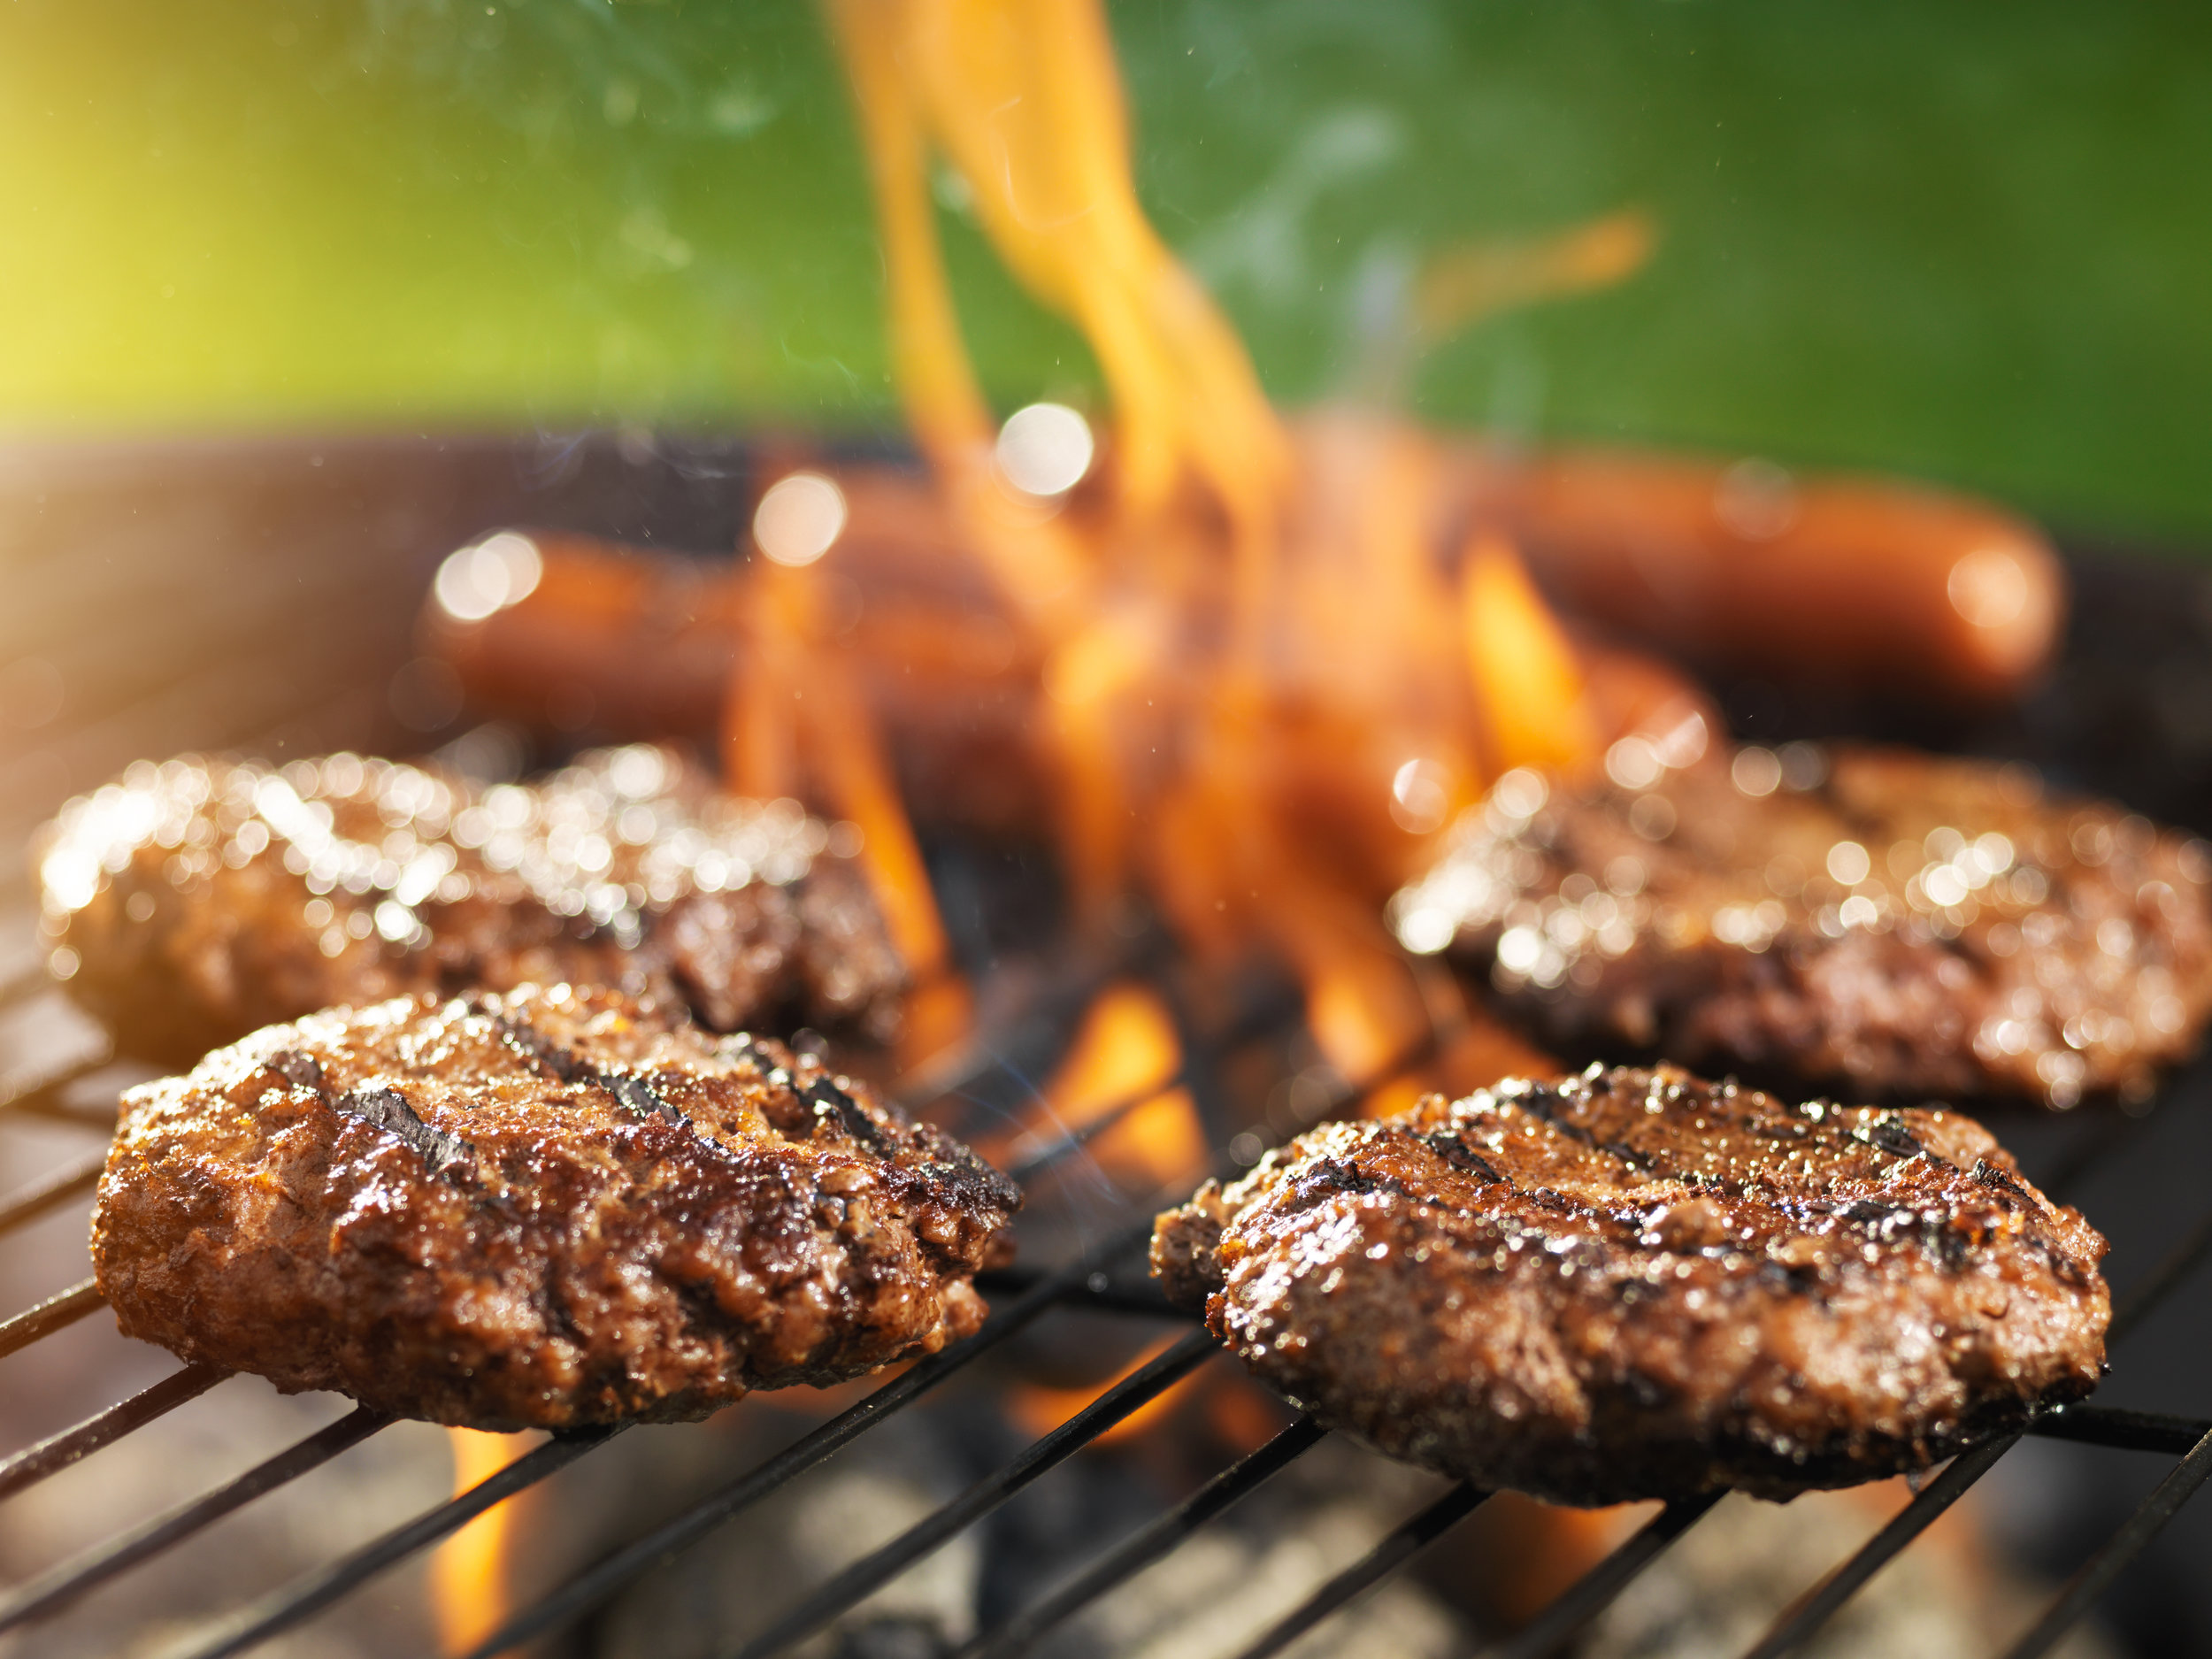 Organic Grass-Fed Burgers    Upgrade Your Barbecue    Learn More